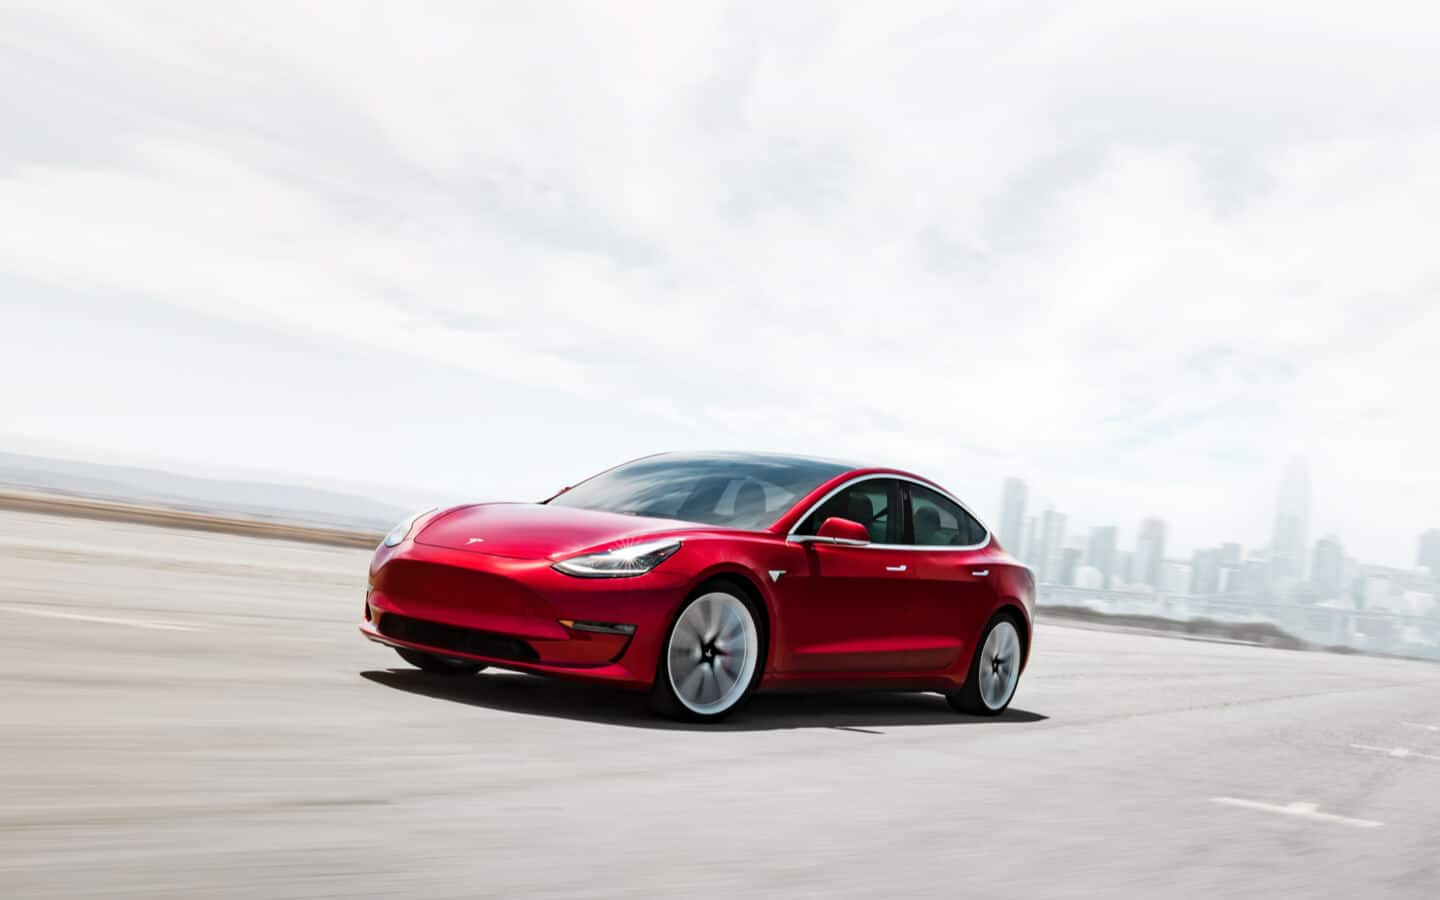 Electric cars solar panels clean energy storage tesla model 3 malvernweather Image collections